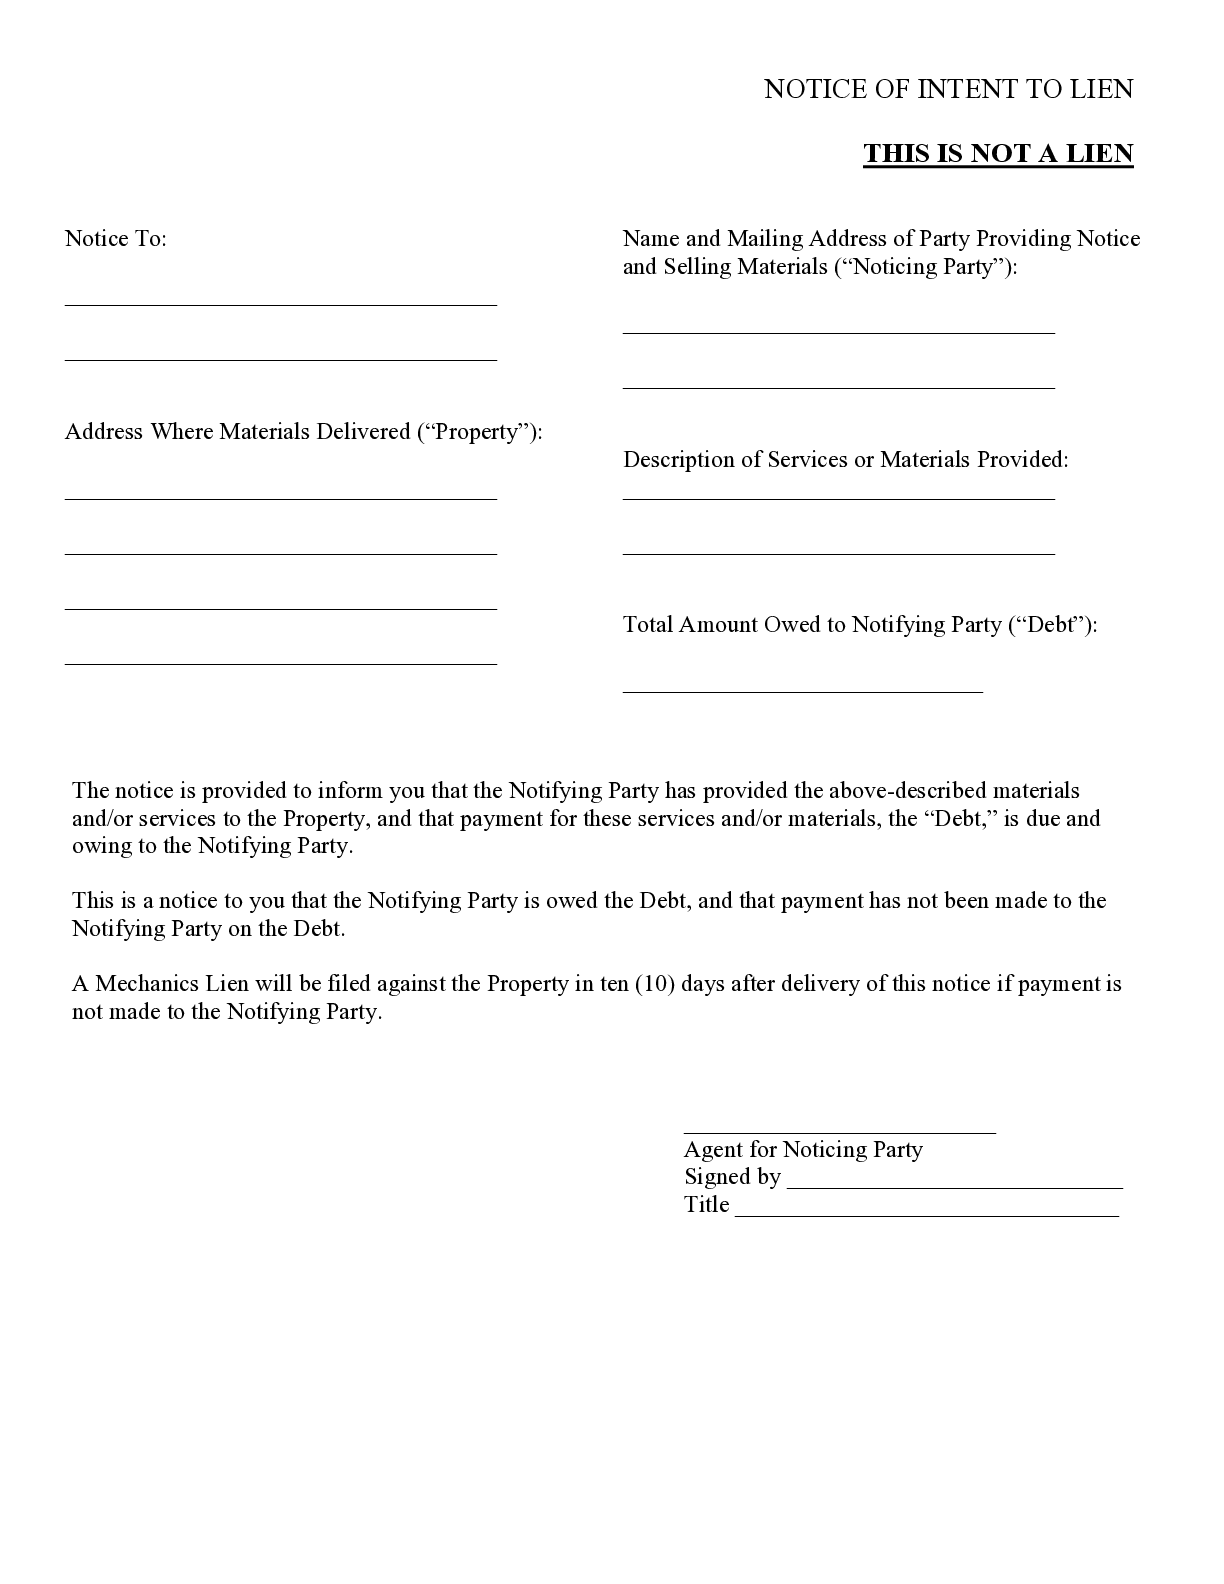 Sample Letter Of Intent To Sue For Money Owed